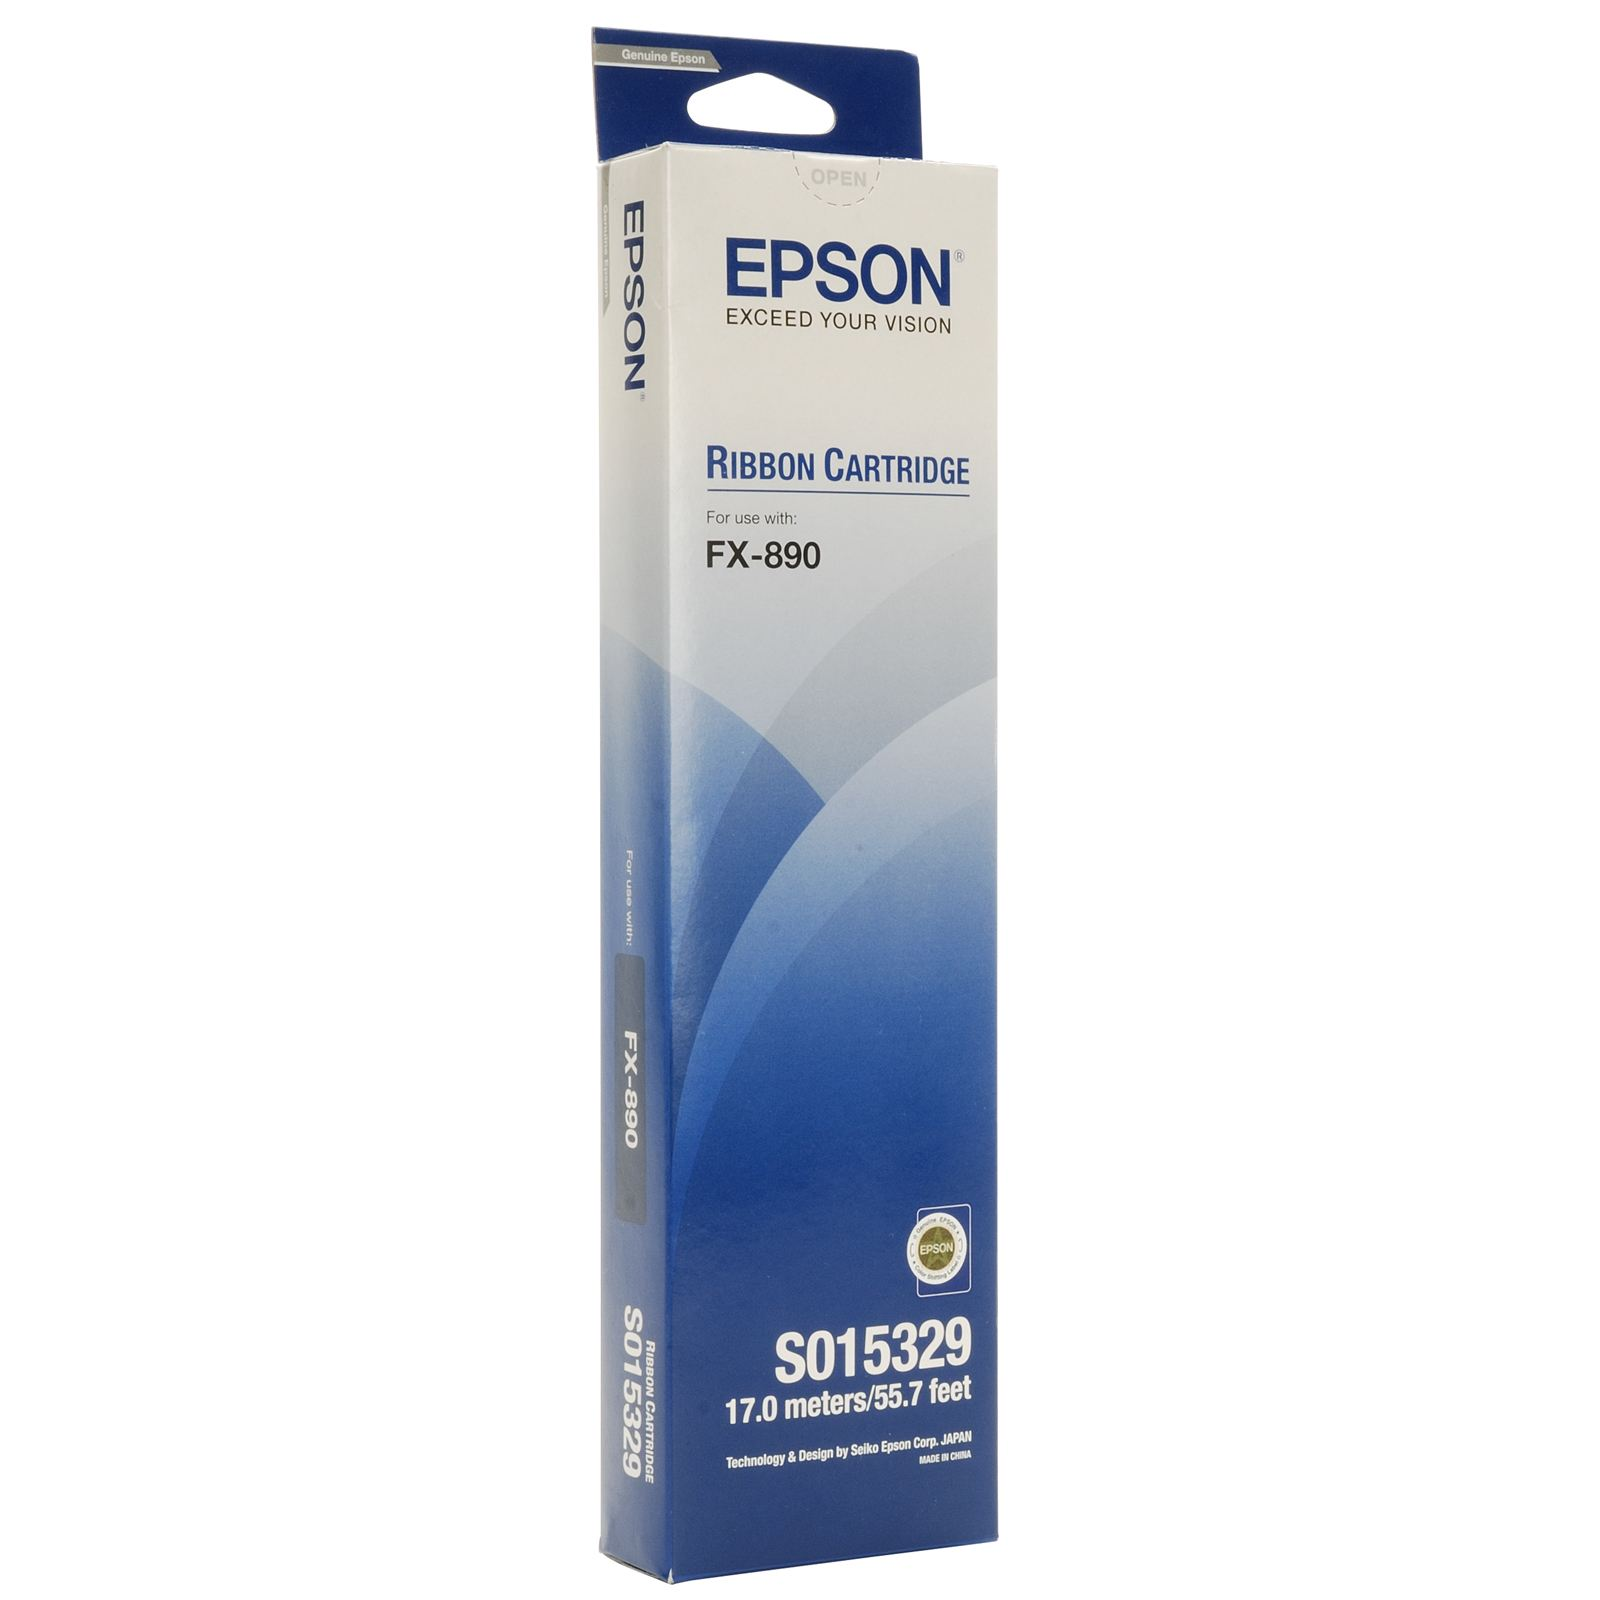 Epson Black Fabric Ribbon FX-890